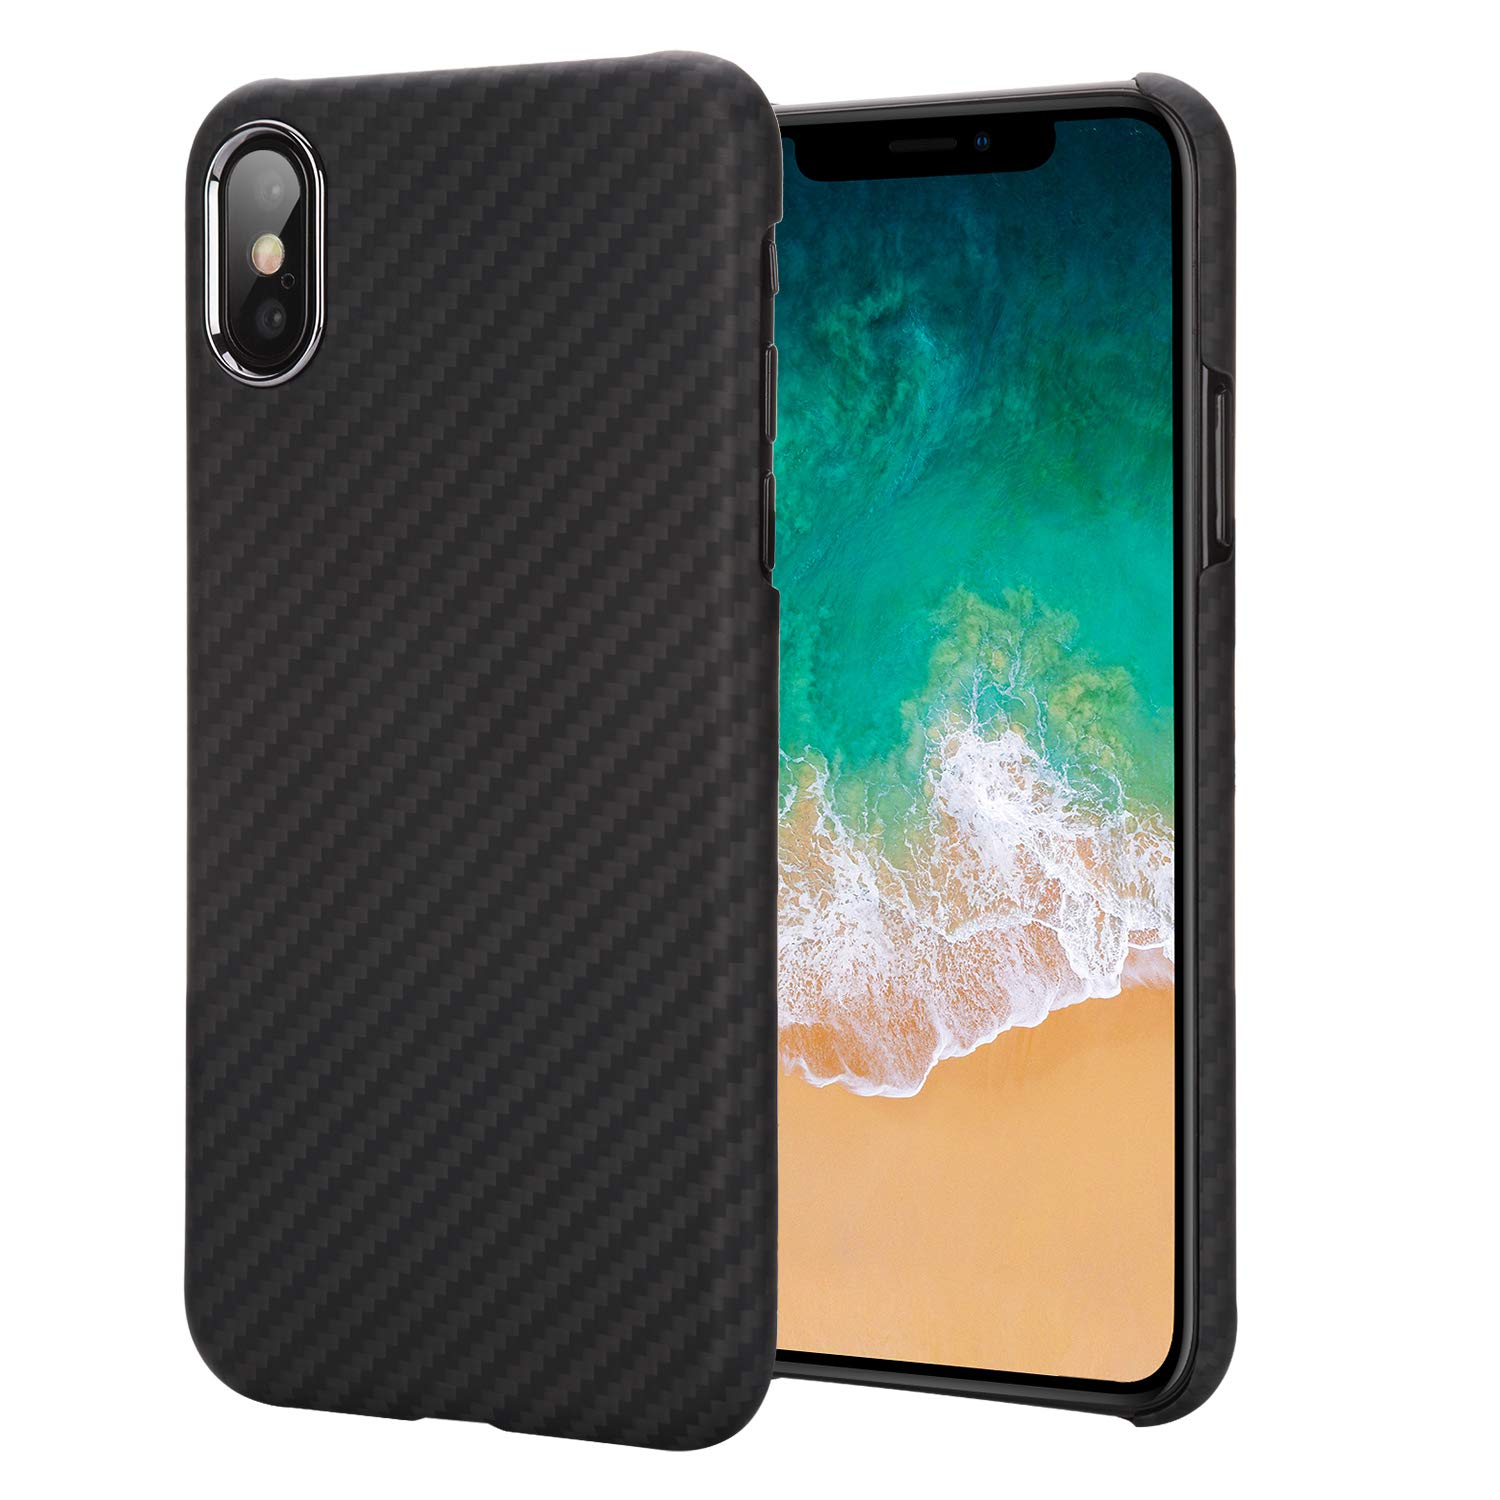 pretty nice a9de5 2ee65 iPhone X Case 5.8 Inch - Getron 100% Aramid Fiber Slim Minimalist Strong  Solid Durable Snap-on Exact-Fit Hard Back Cover for Apple iPhone X 5.8